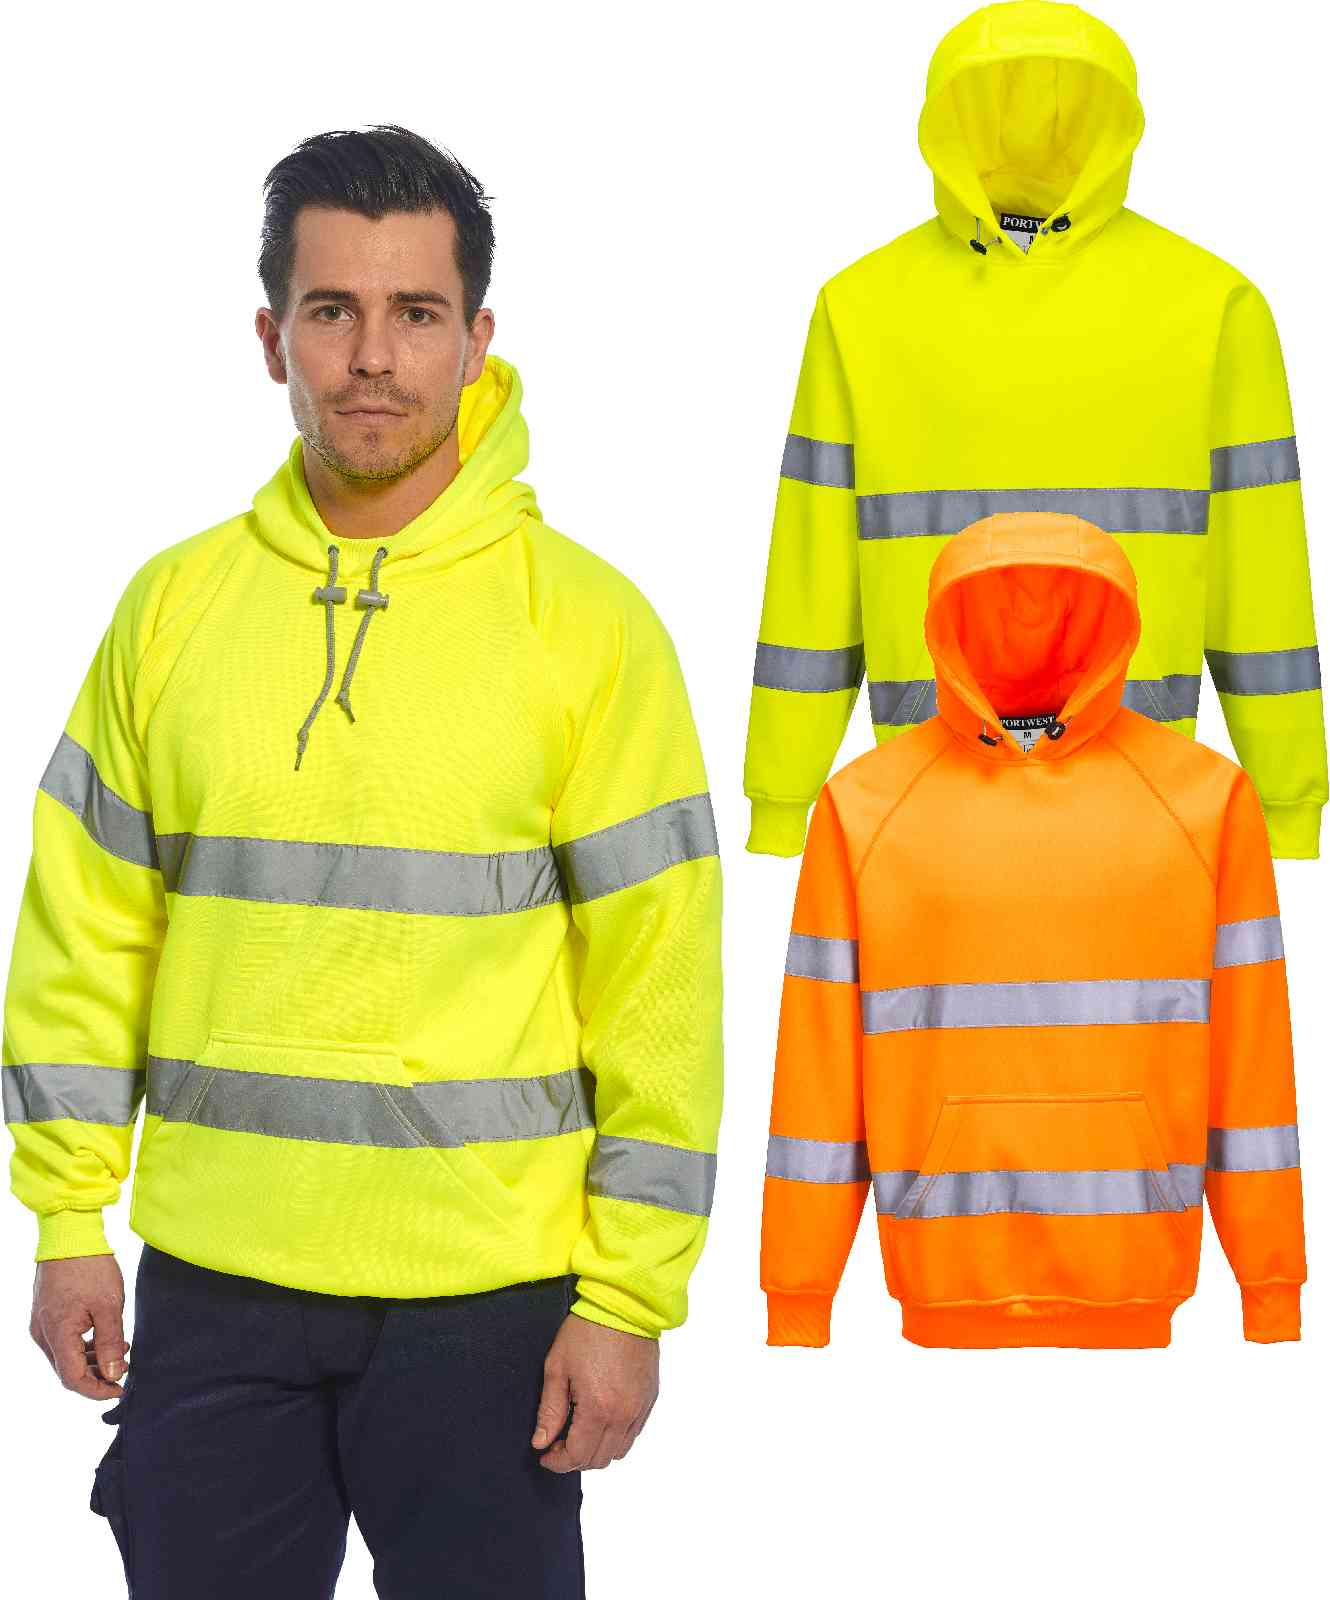 fall high visibility hoodies sale